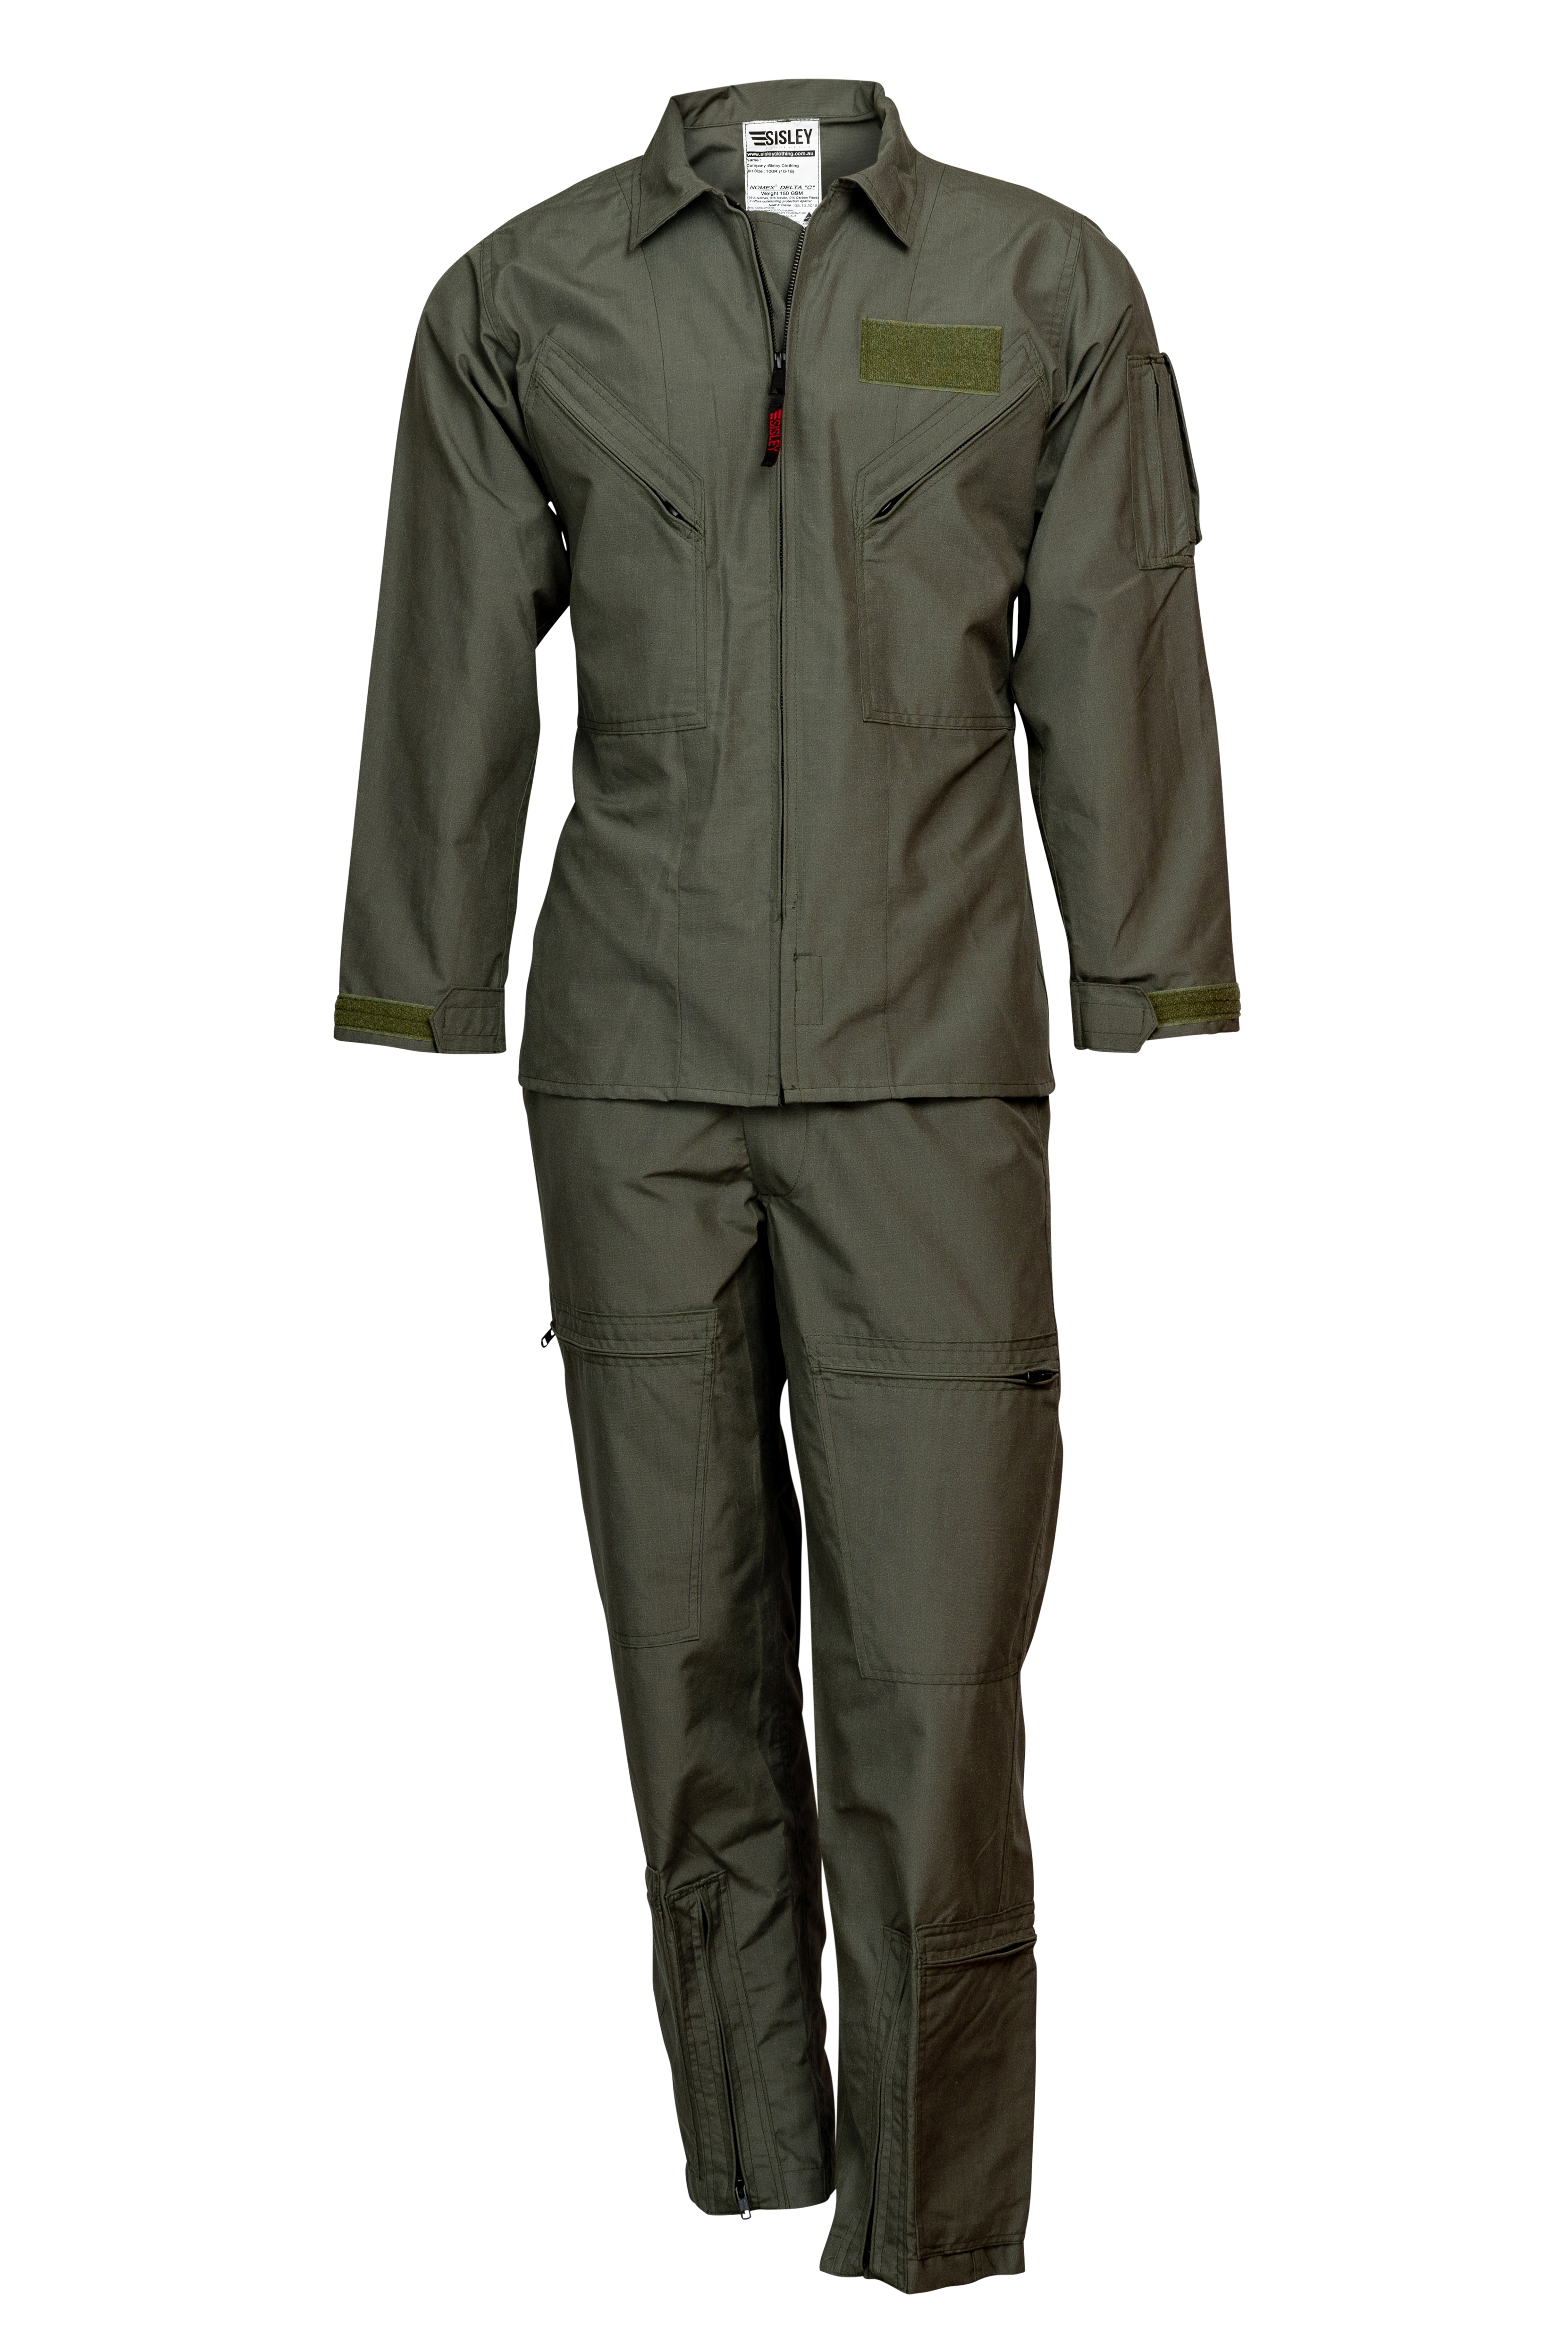 NOMEX TWO PIECE 4.5 oz FLIGHT SUIT Mil Spec